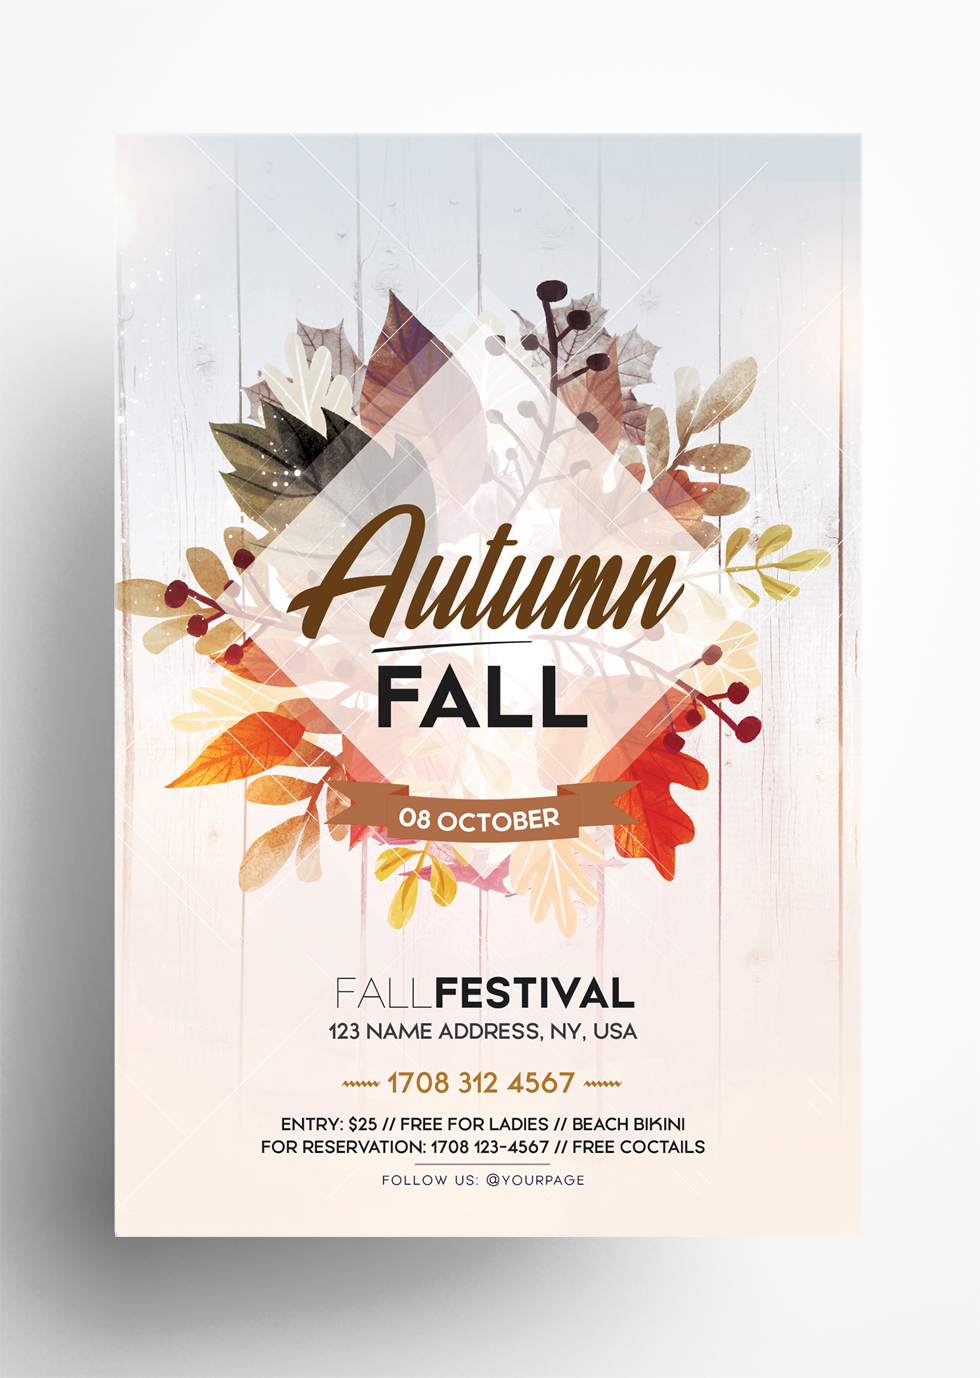 Fall Festival – Autumn Free PSD Flyer Template